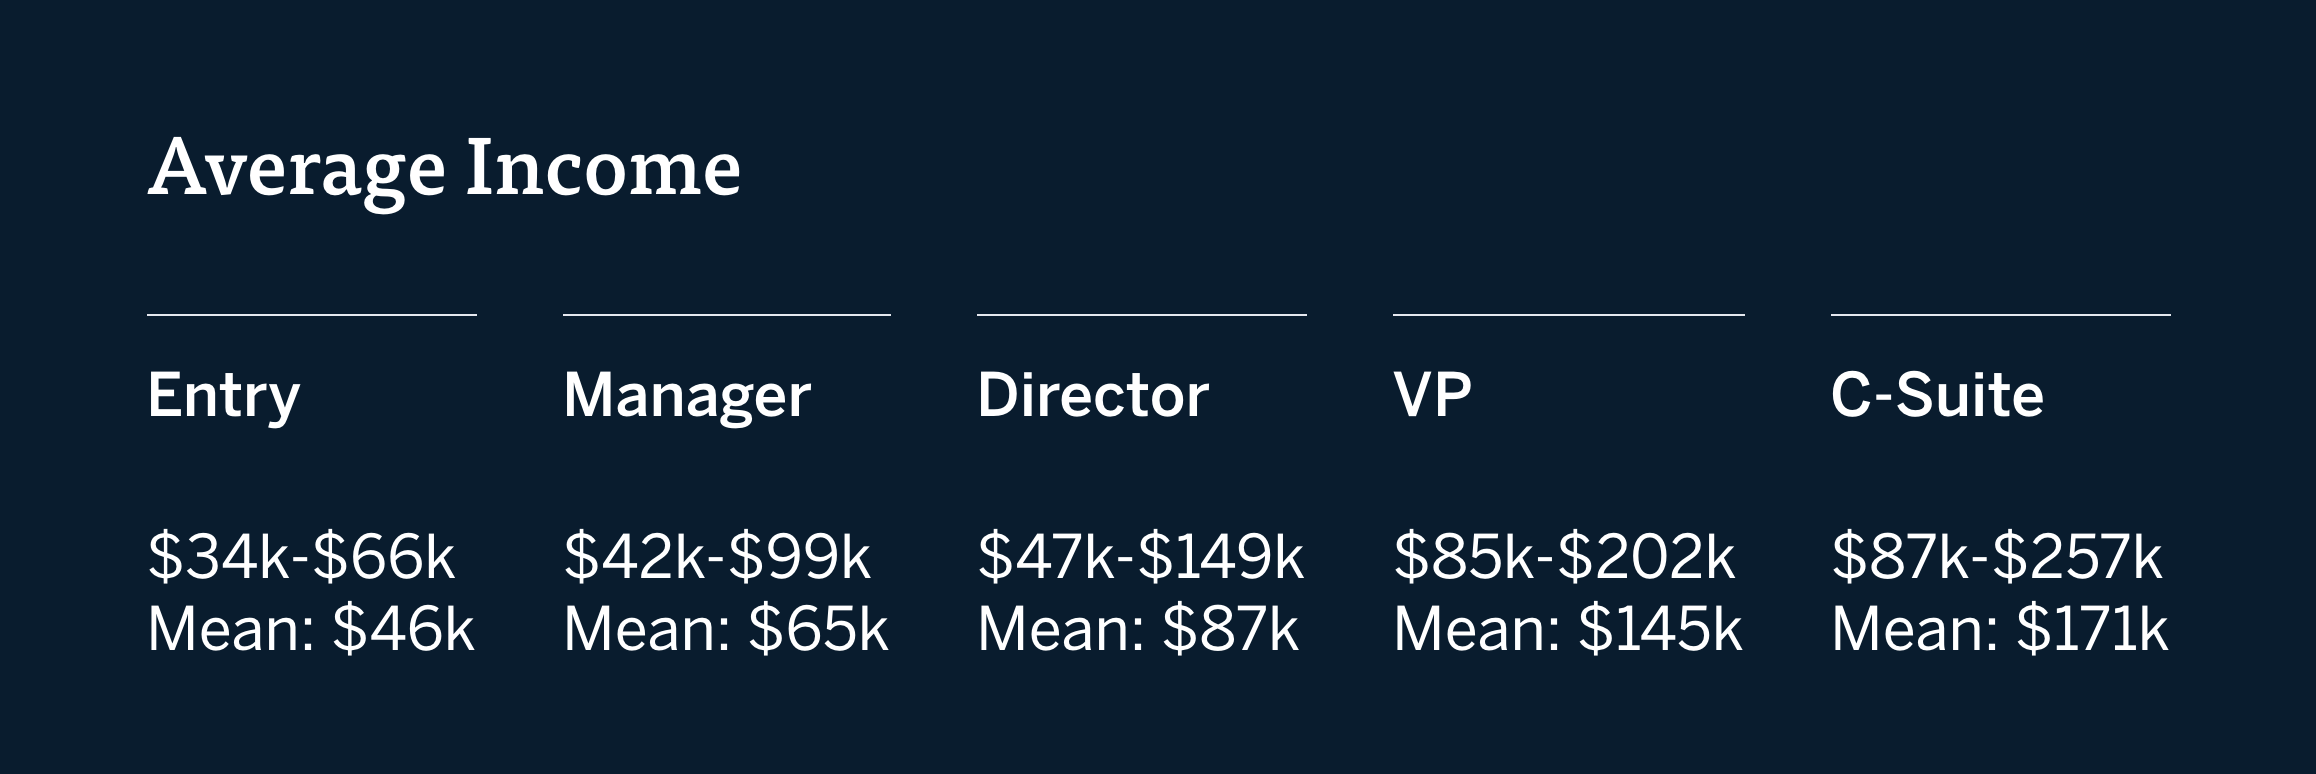 A graph of average income for entry, manager, director, VP, and c-suite marketing jobs, courtesy of Payscale.